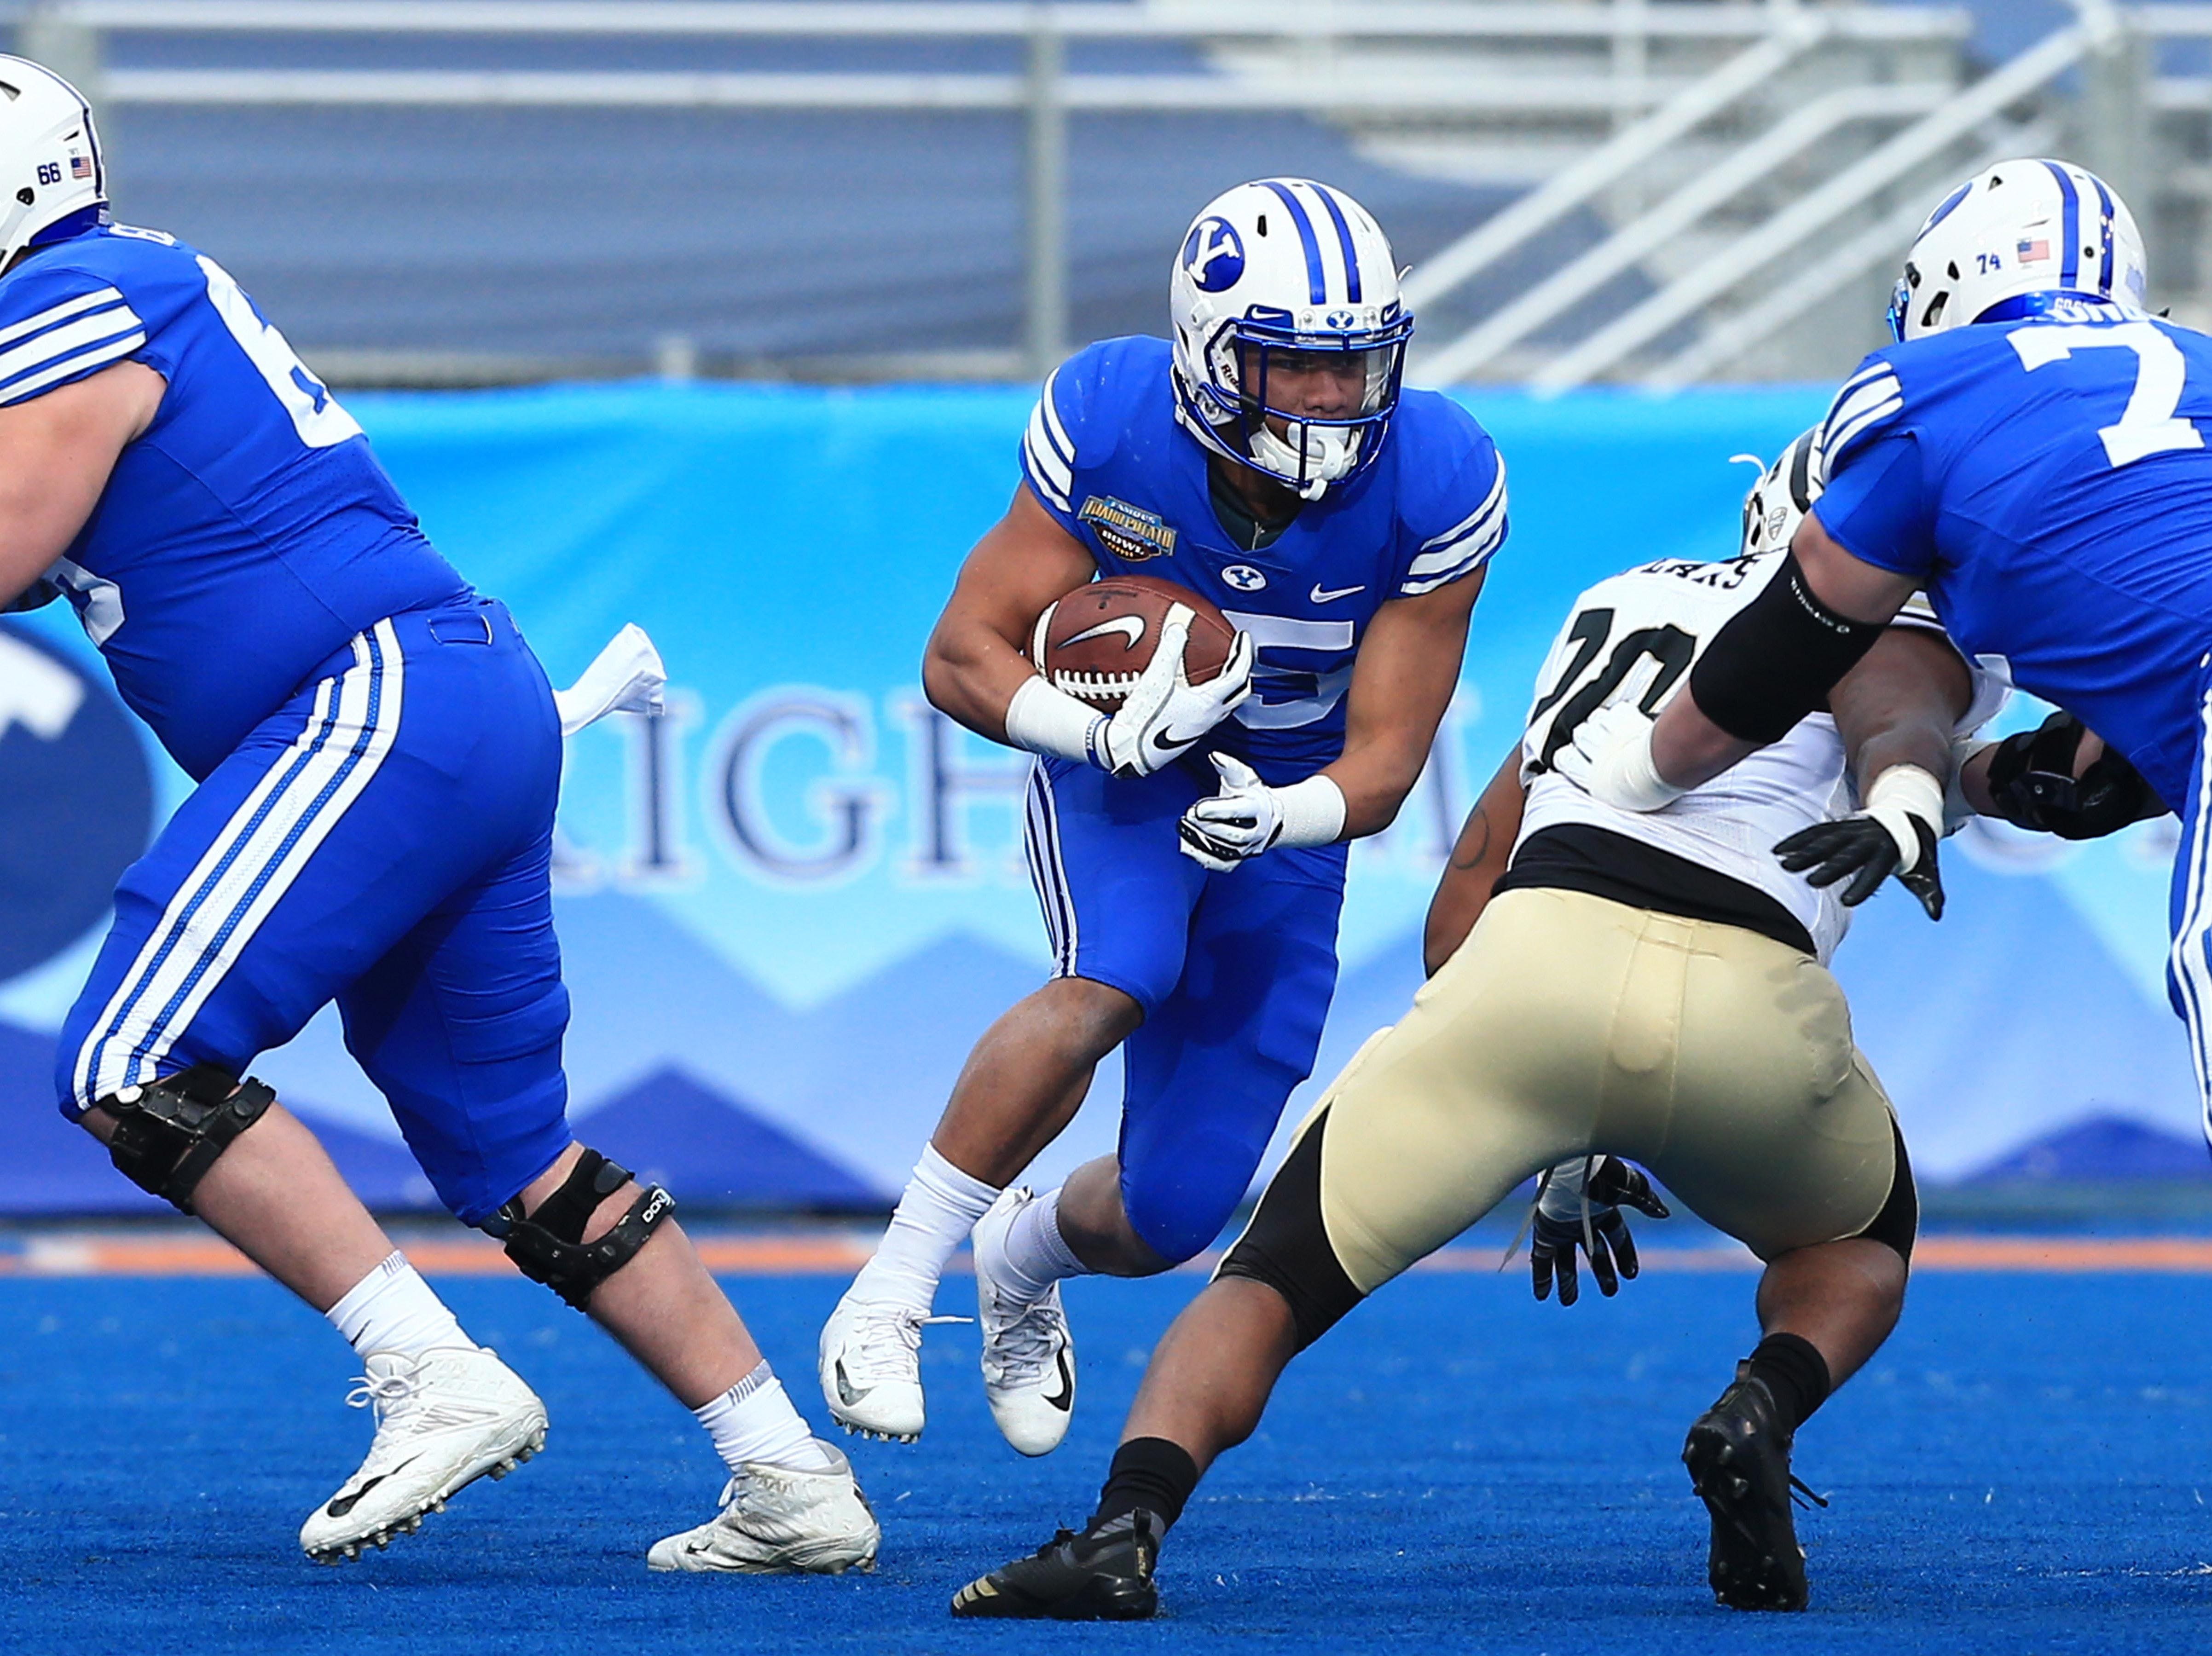 Dec 21, 2018; Boise, ID, United States; Brigham Young Cougars running back Brayden El-Bakri (35) runs during the first half  of play versus the Western Michigan Broncos at the 2018 Potato Bowl at Albertsons Stadium.